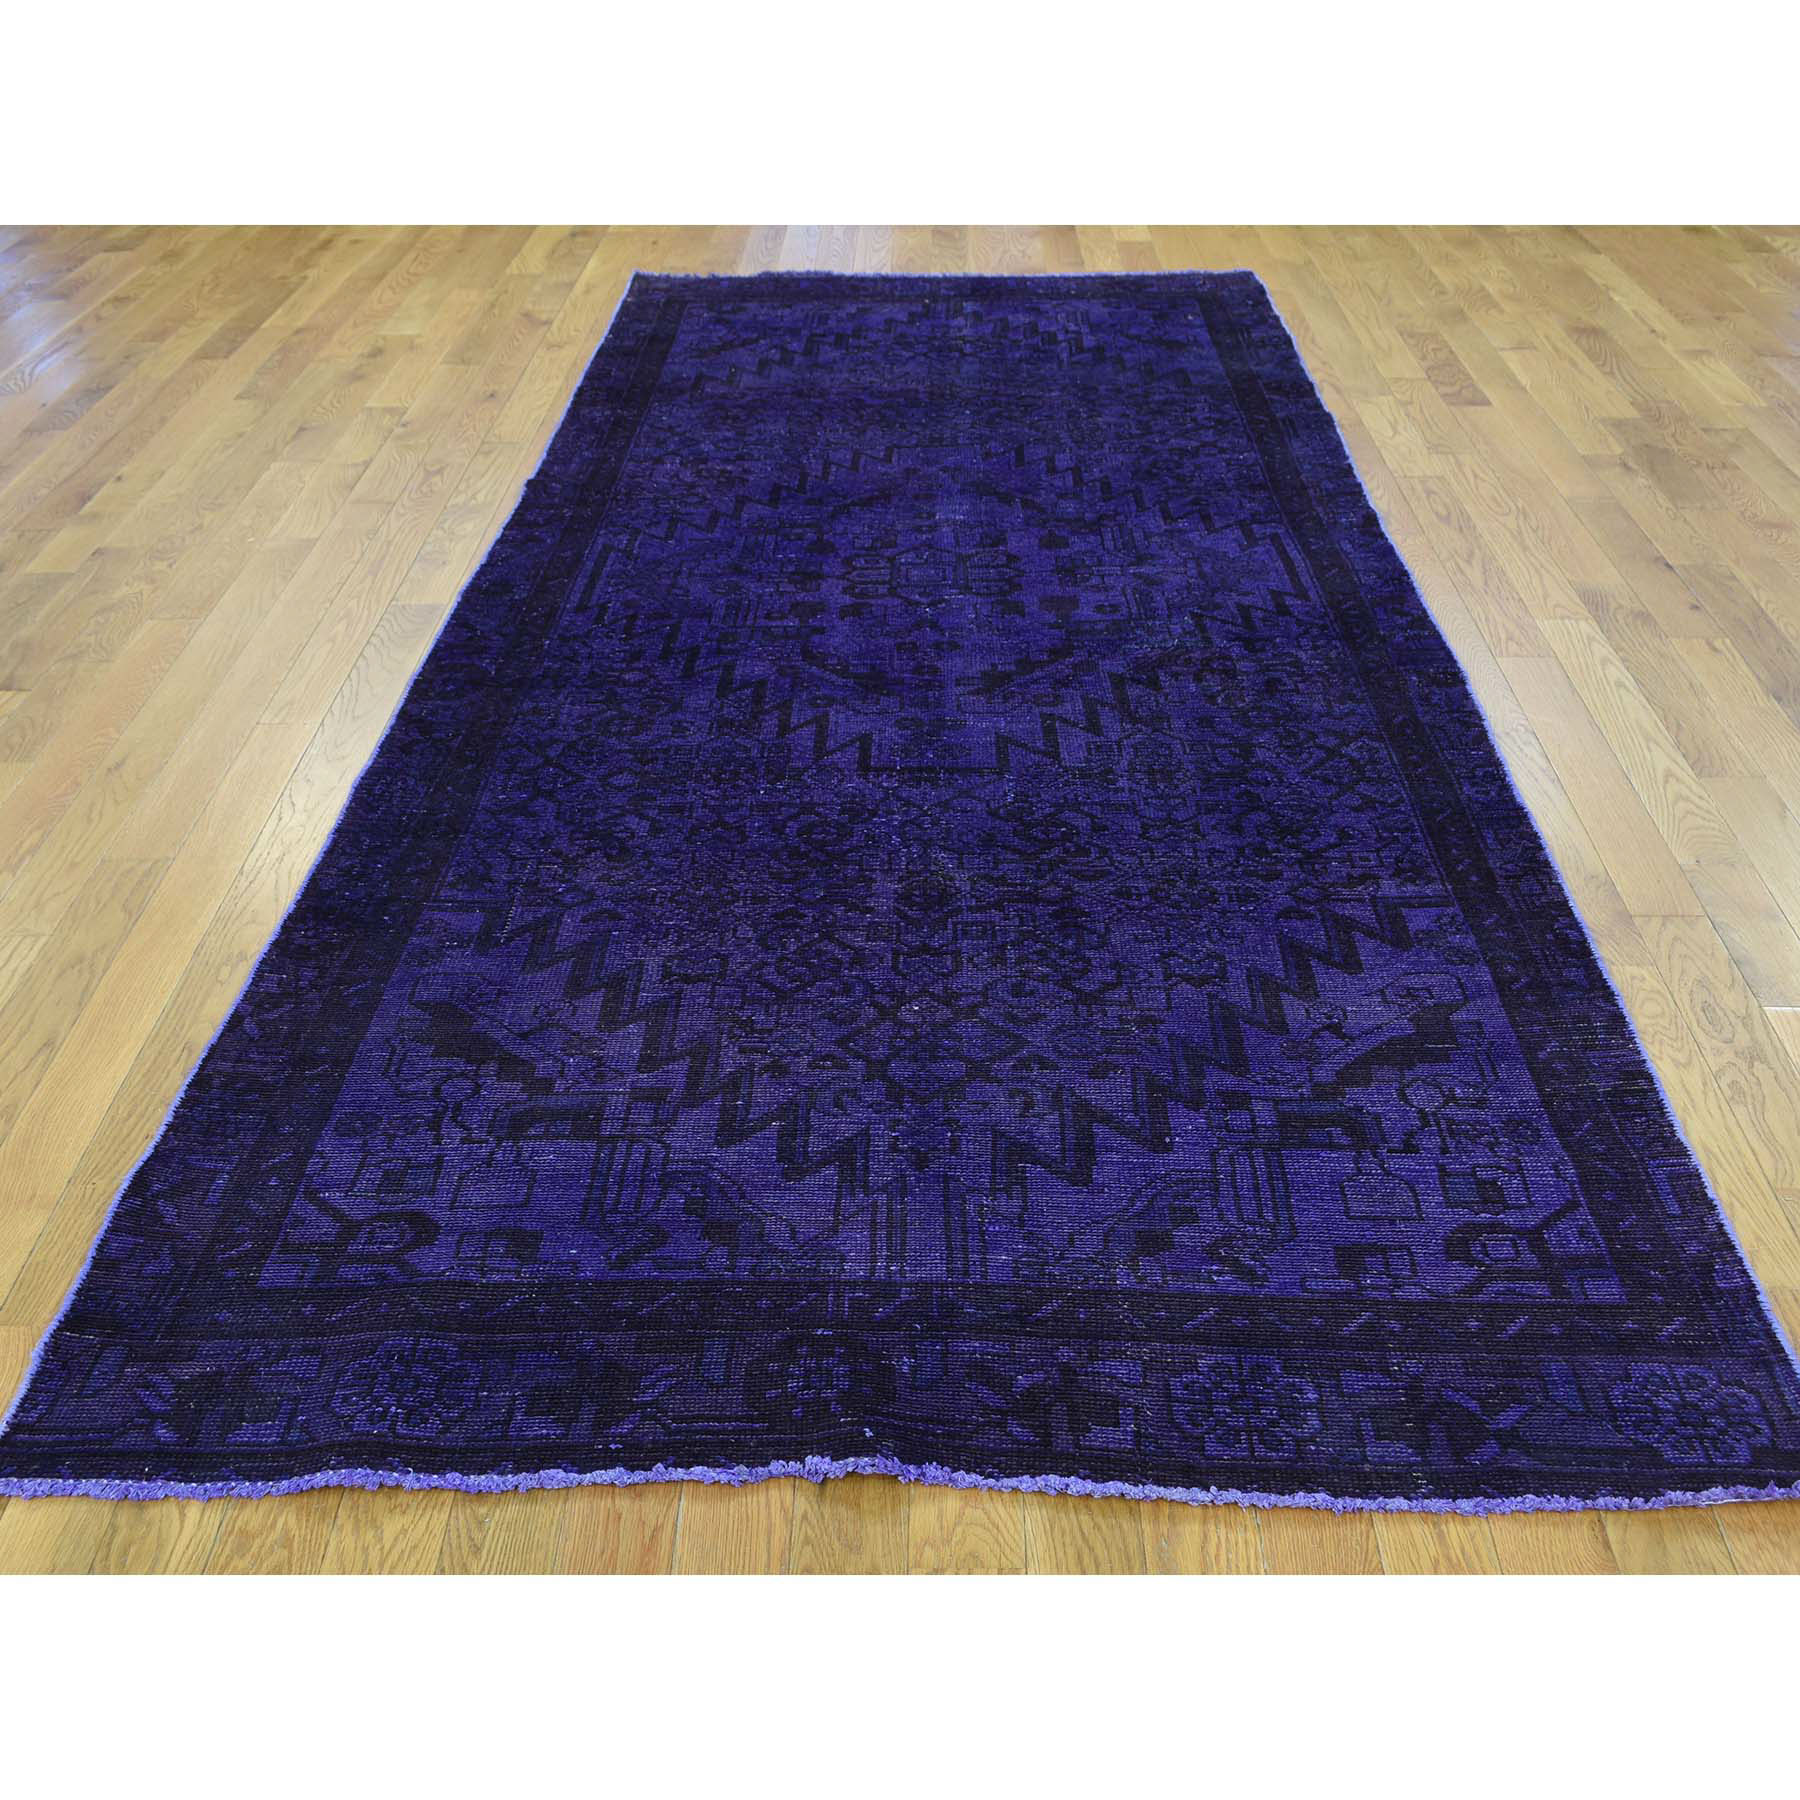 4 Wide Runner Rug Carpet Vidalondon